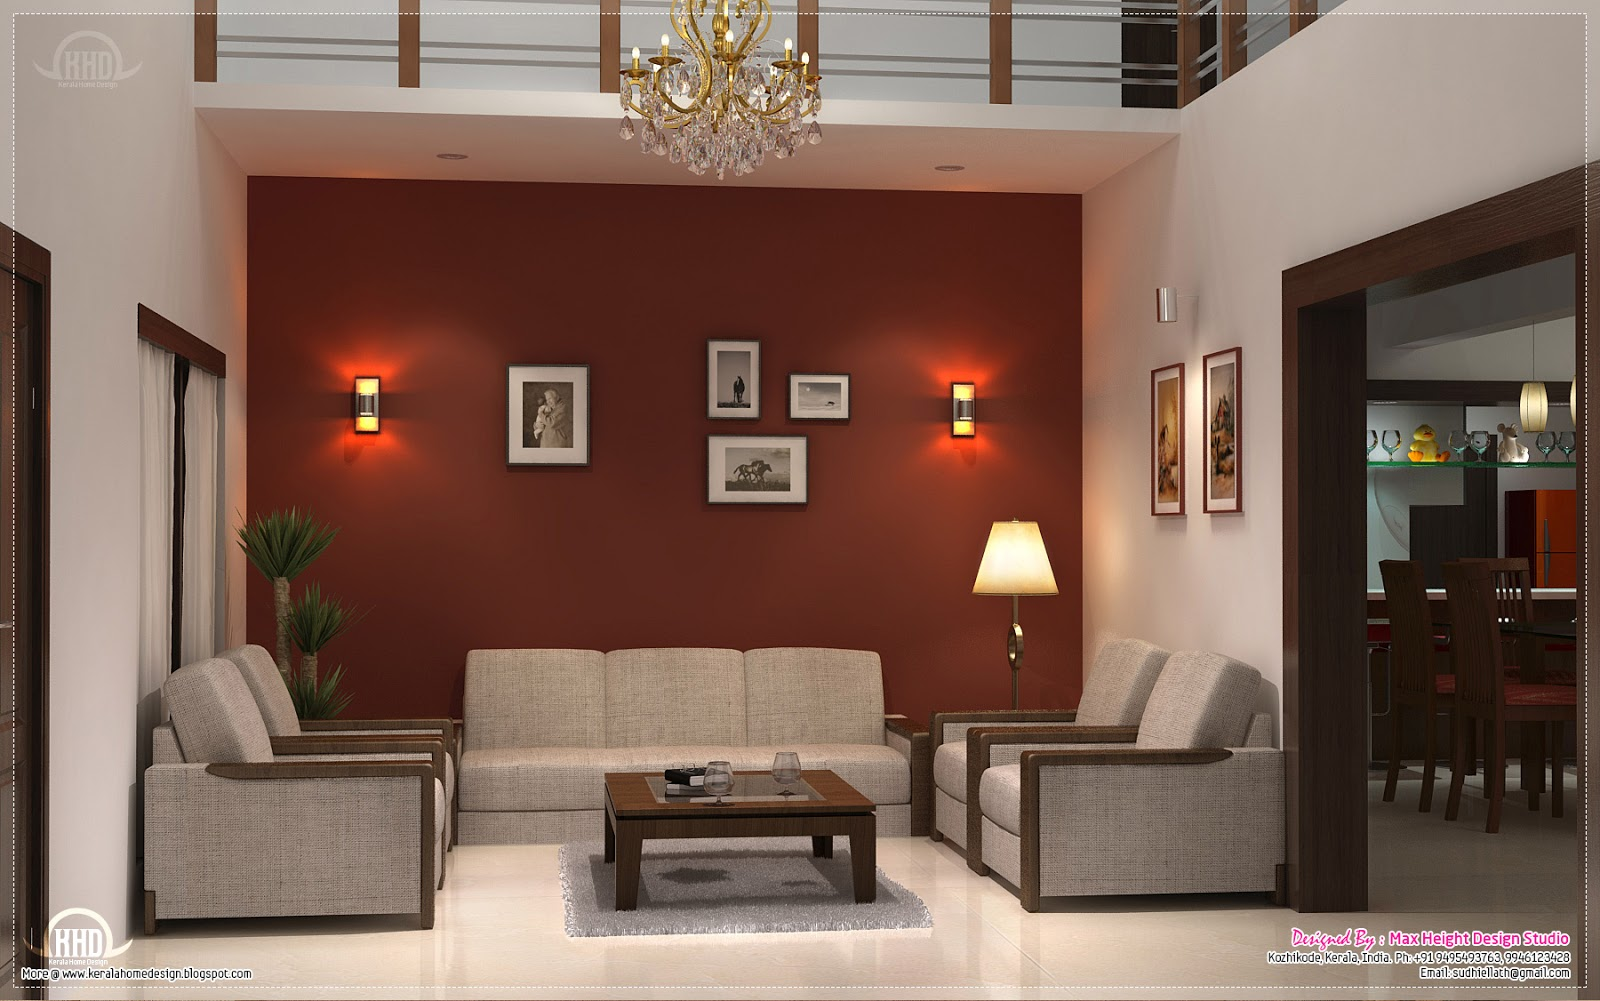 Home interior design ideas kerala home design and floor plans Home life furniture bangalore